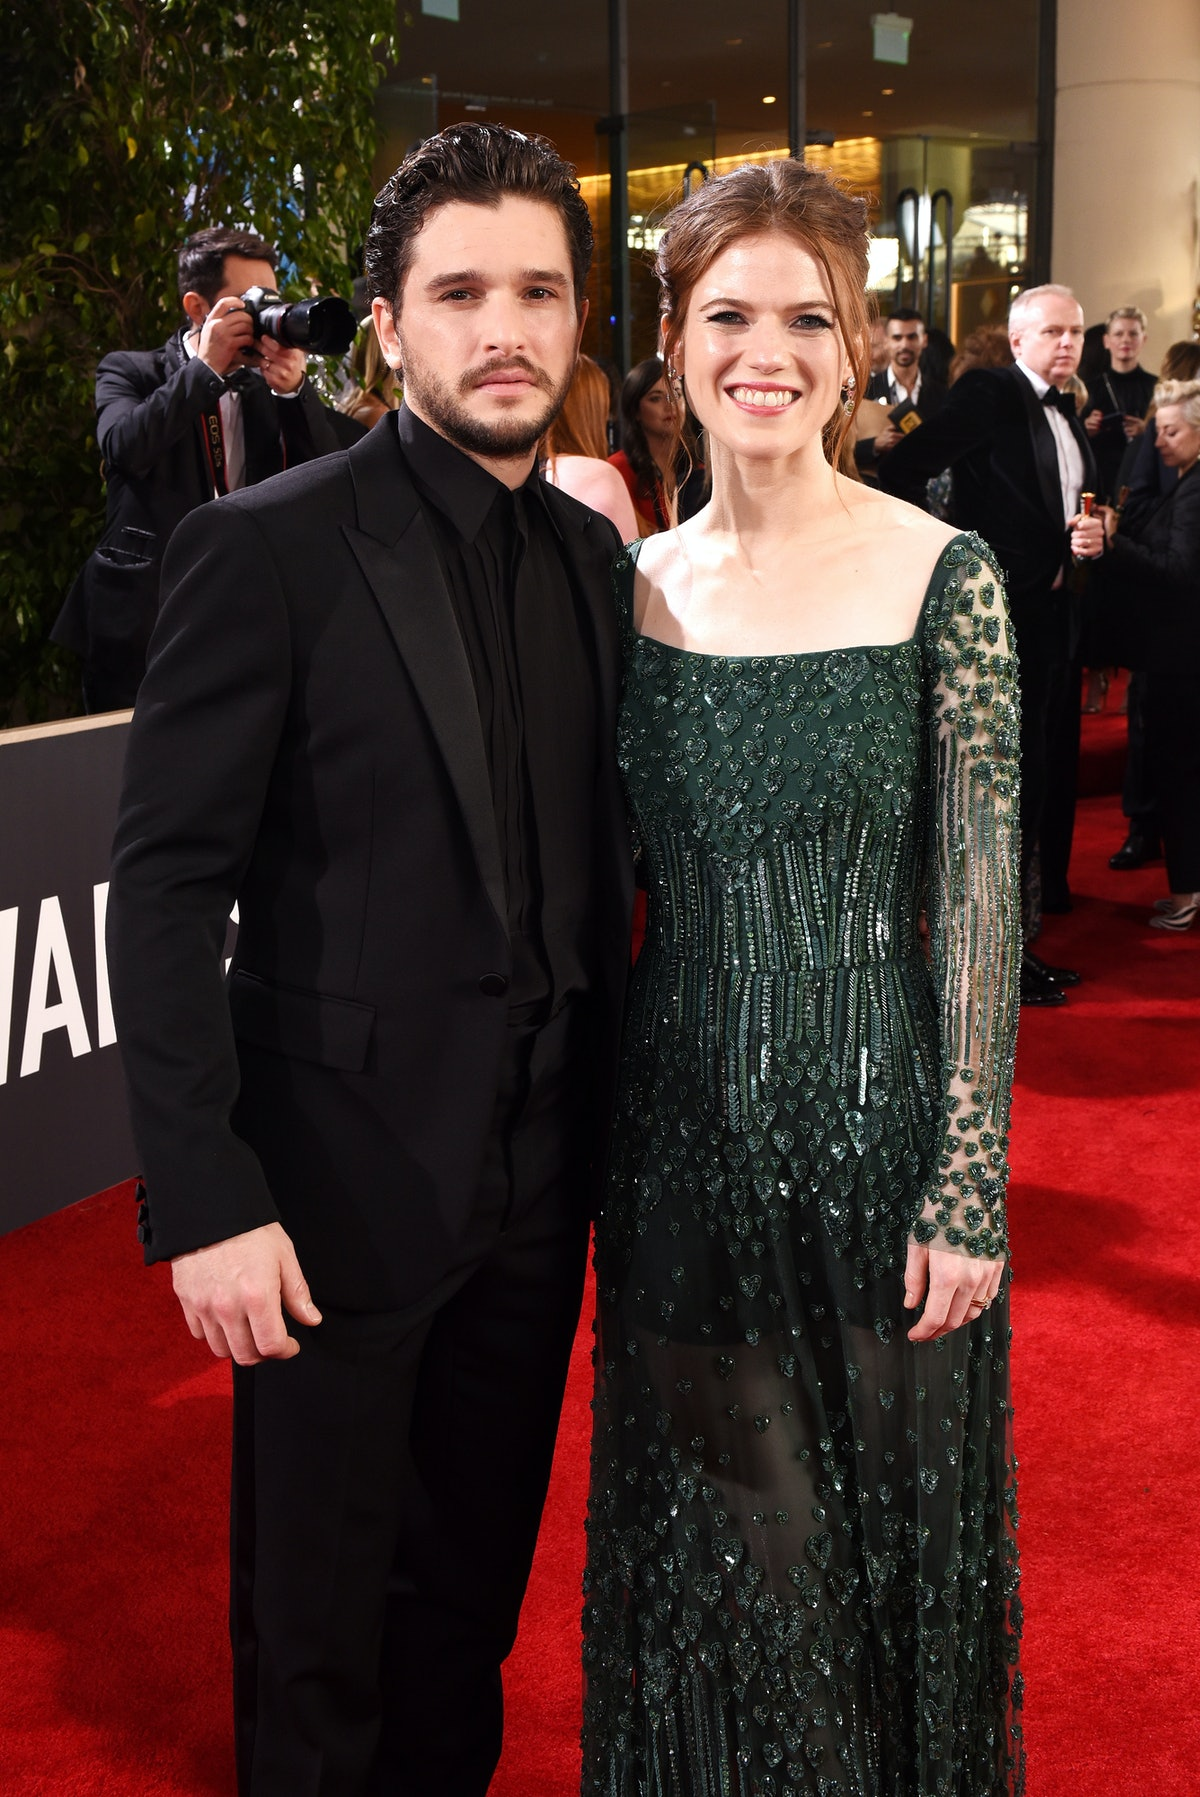 BEVERLY HILLS, CALIFORNIA - JANUARY 05: Kit Harington and Rose Leslie attend the 77th Annual Golden ...